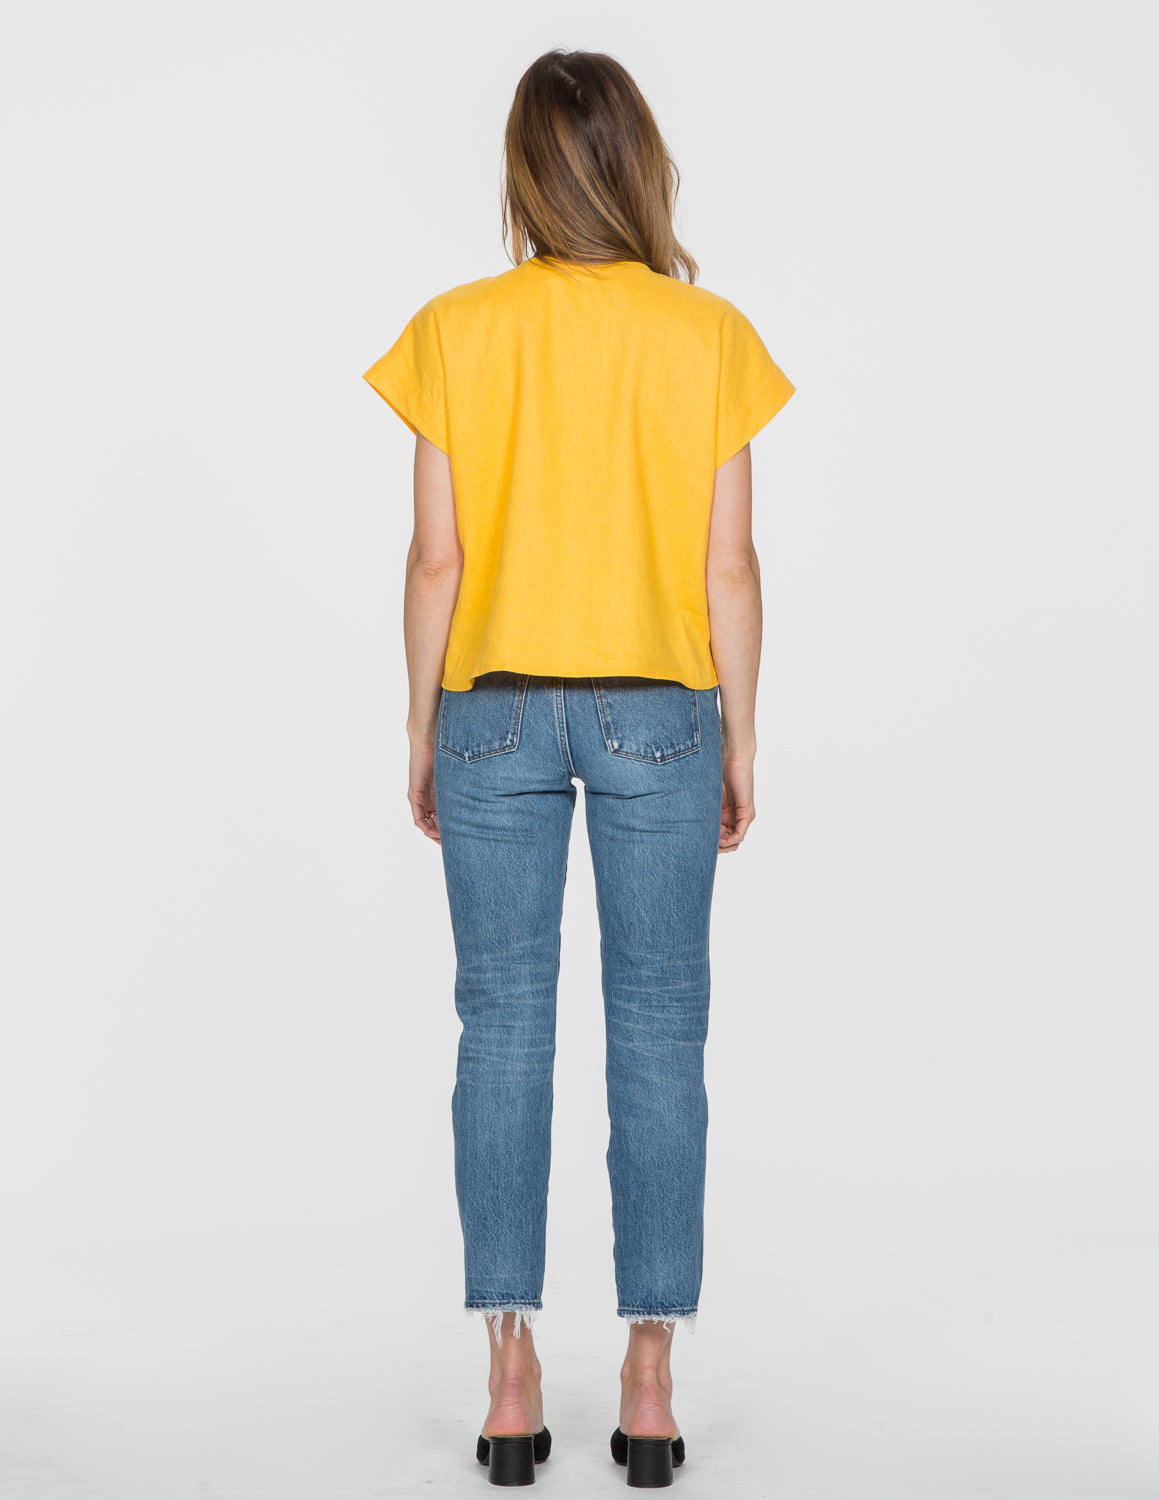 Chapter Goods | Breastfeeding-Friendly Clothes | Box Top in Lemon (Yellow Linen)